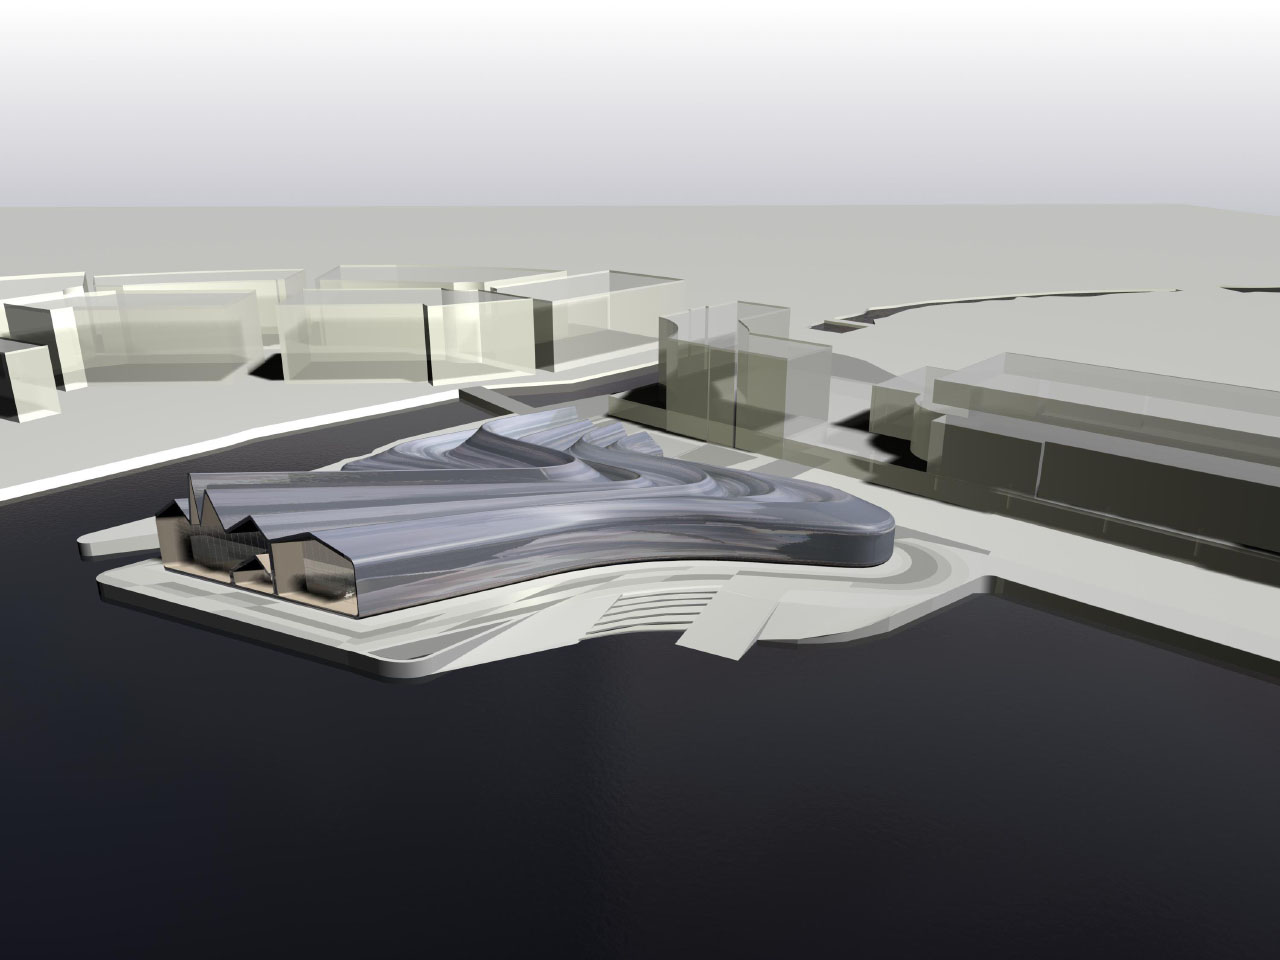 Zaha Hadid Architects' Riverside Museum of Transport and Travel aerial rendering